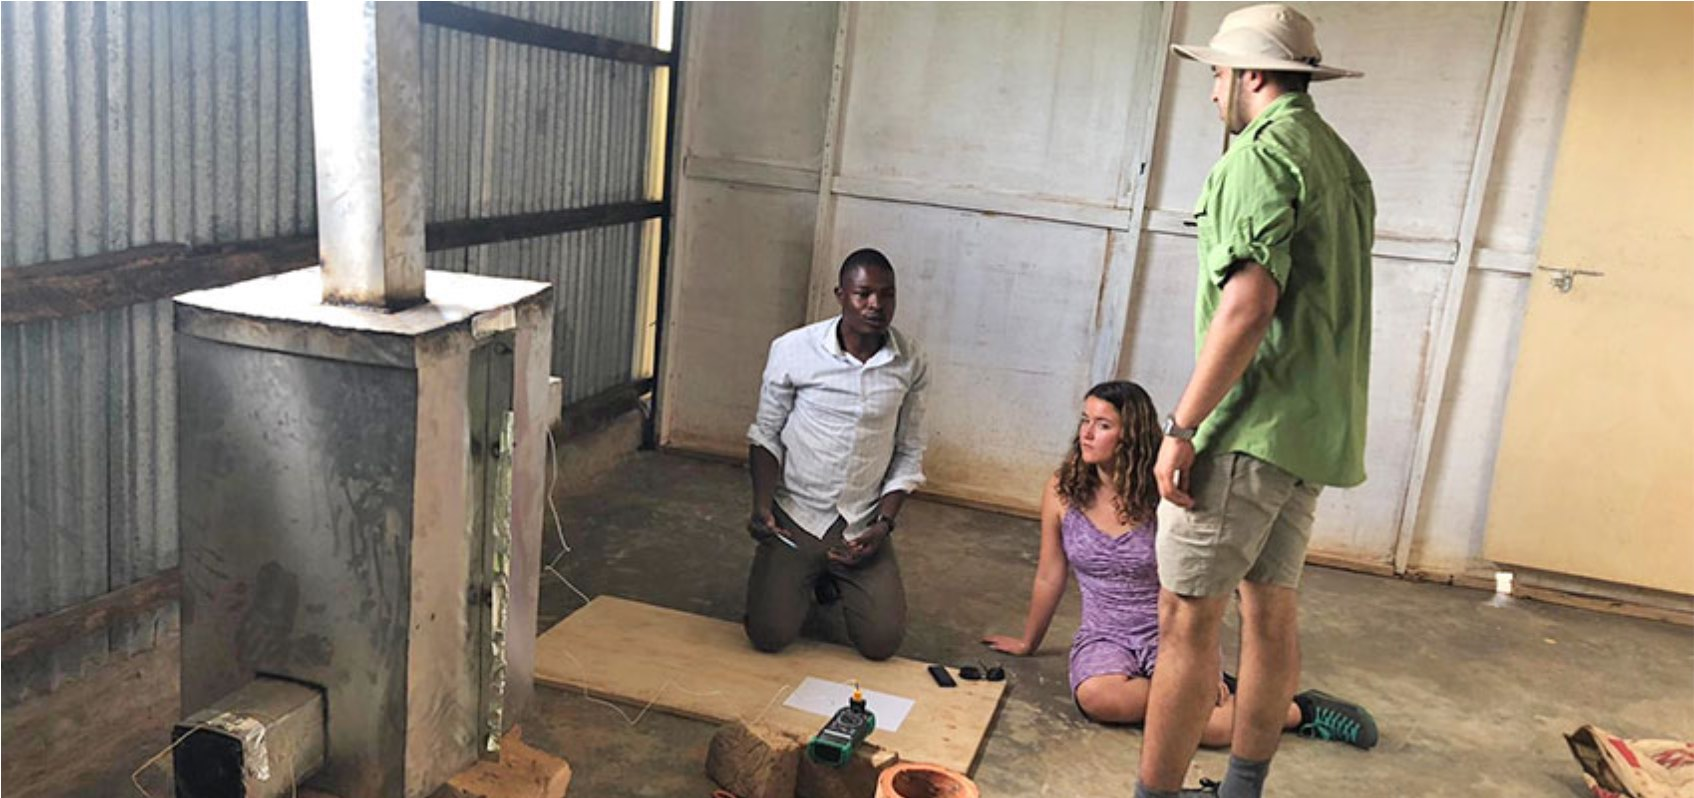 D-Lab students and communit member at TEWDI Uganda testing an indoor biomass dryer. January 2020.